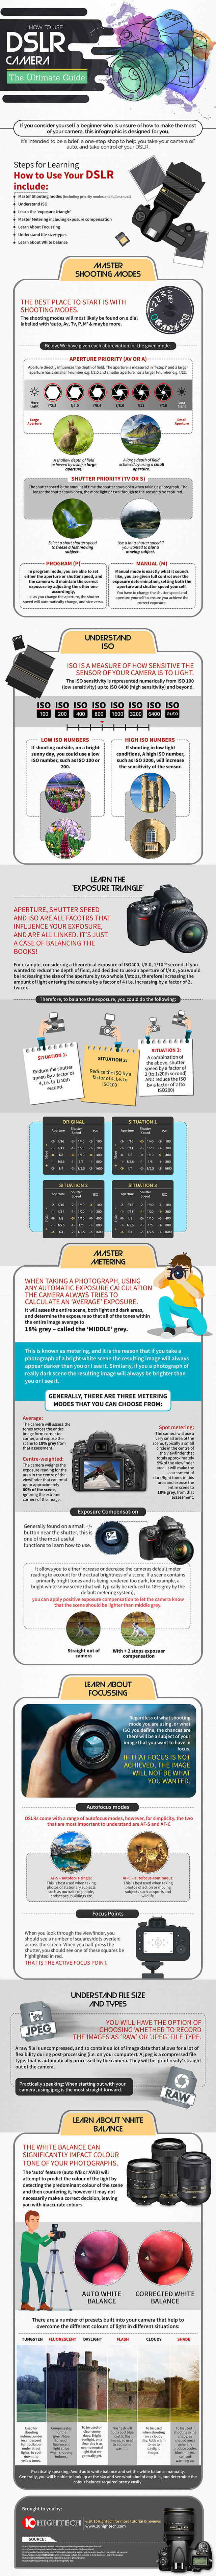 Dslr camera cheat sheet infographic